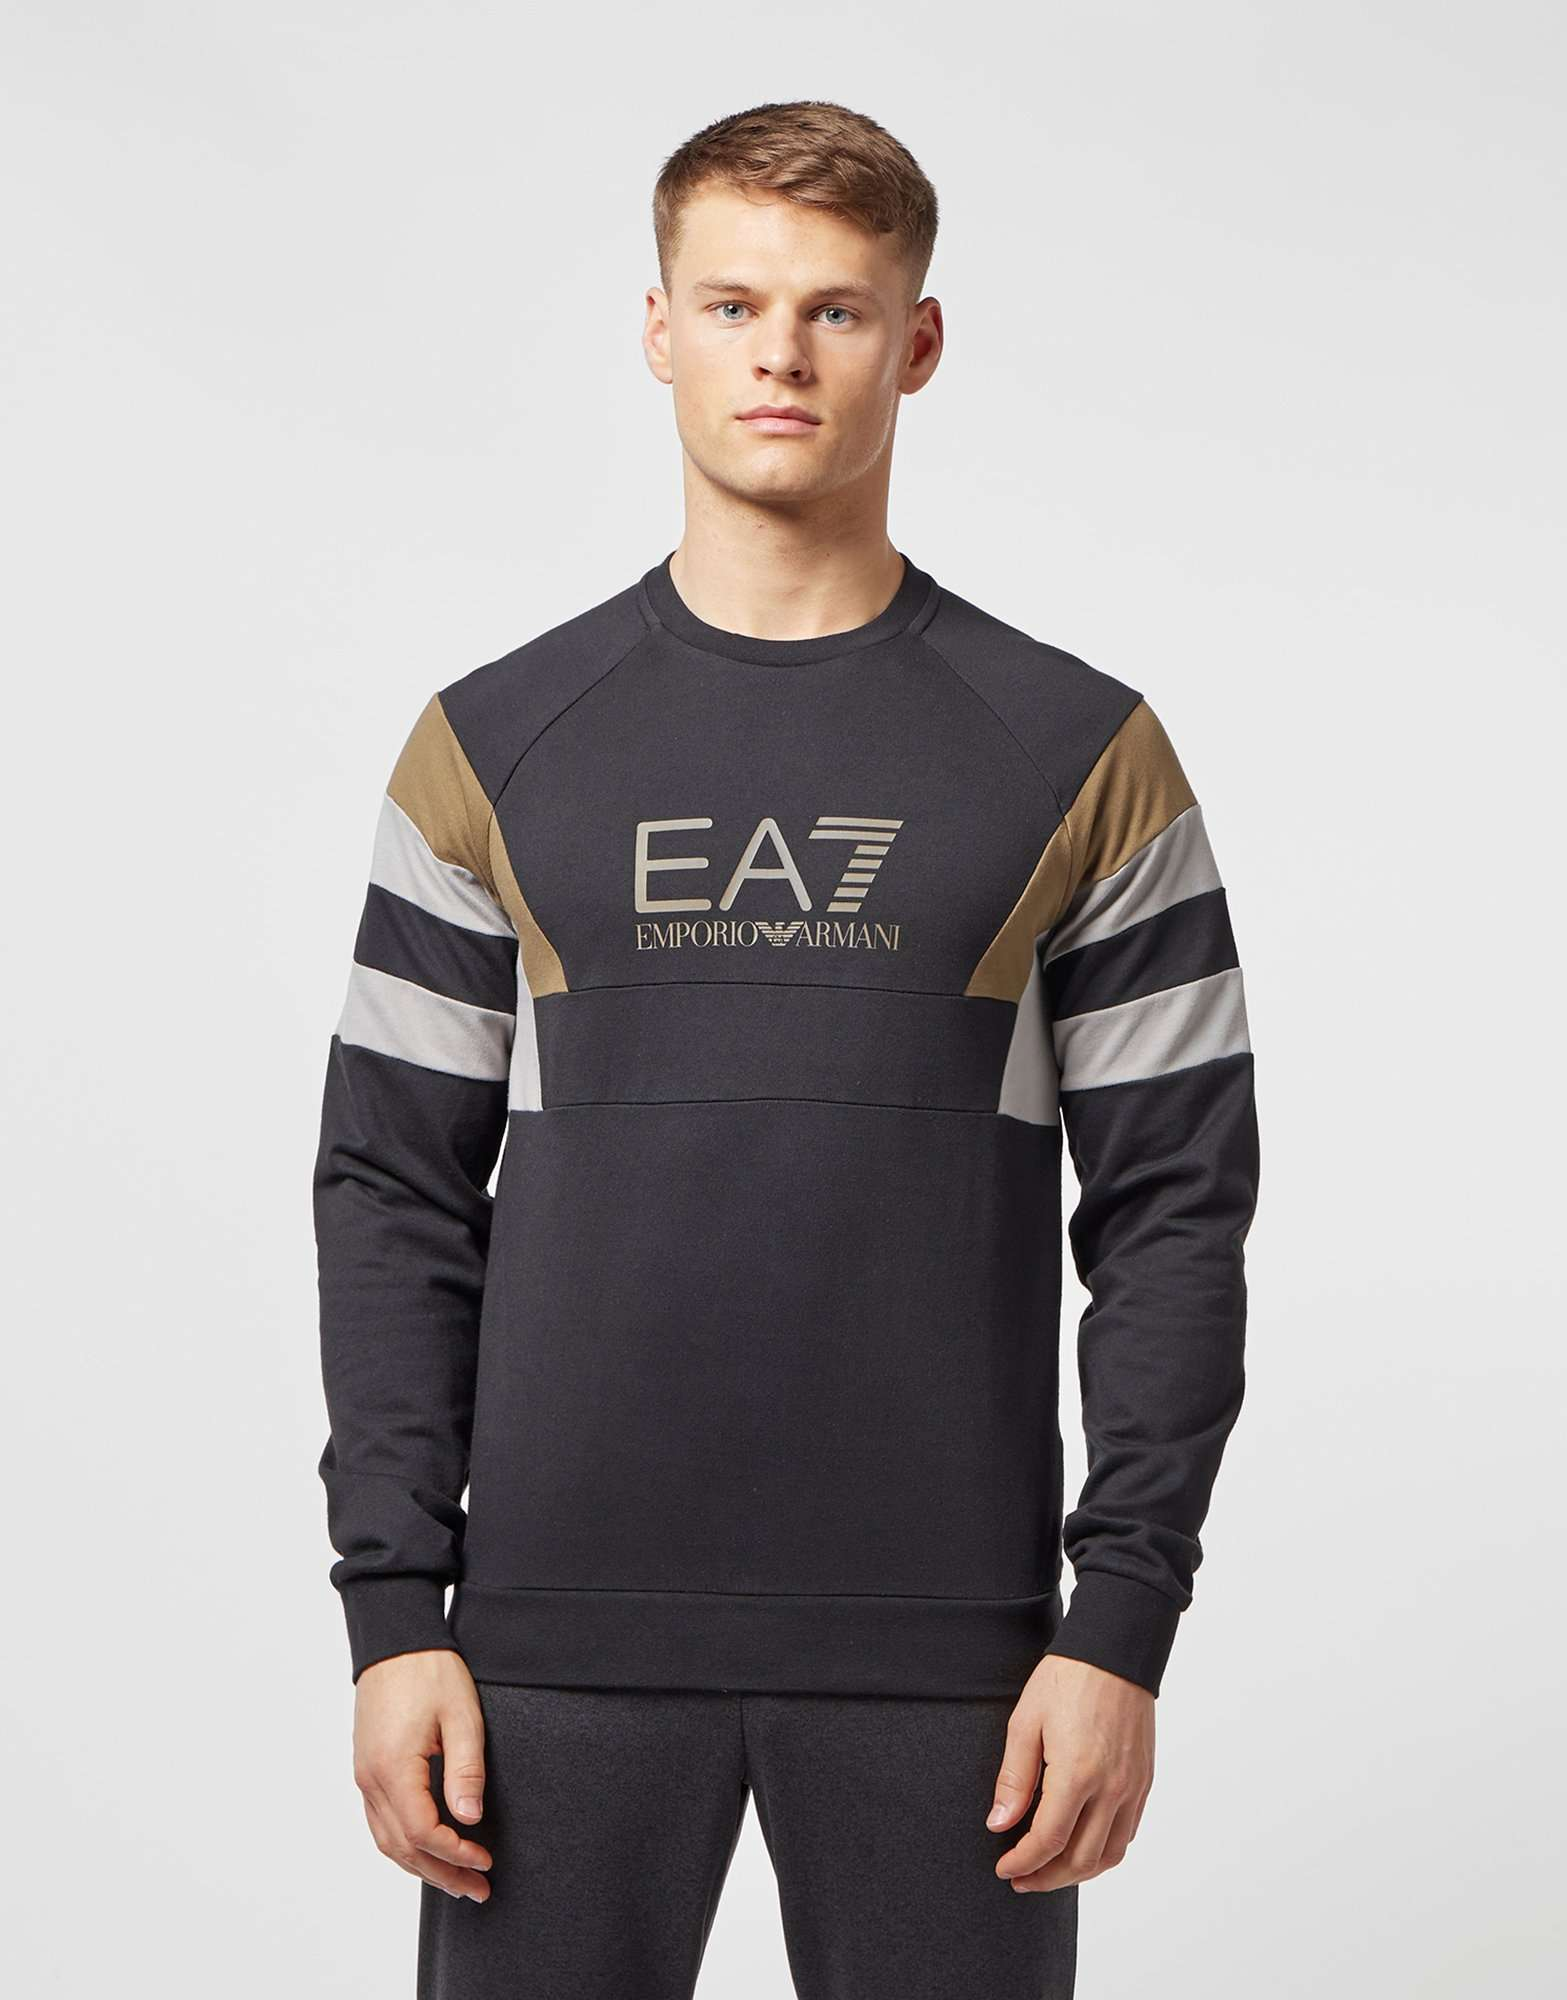 Emporio Armani EA7 Retro Panelled Sweatshirt - Exclusive